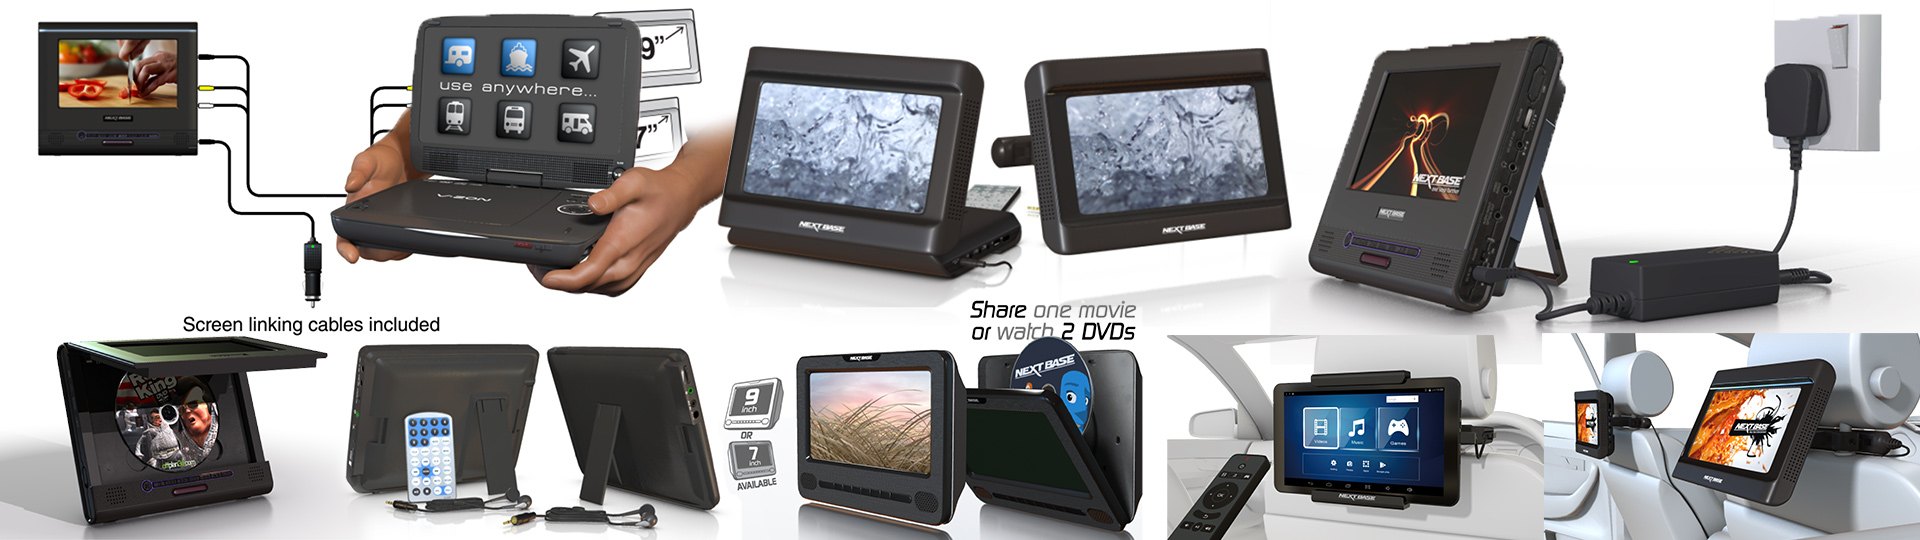 3D Product Visualization of consumer electronics images